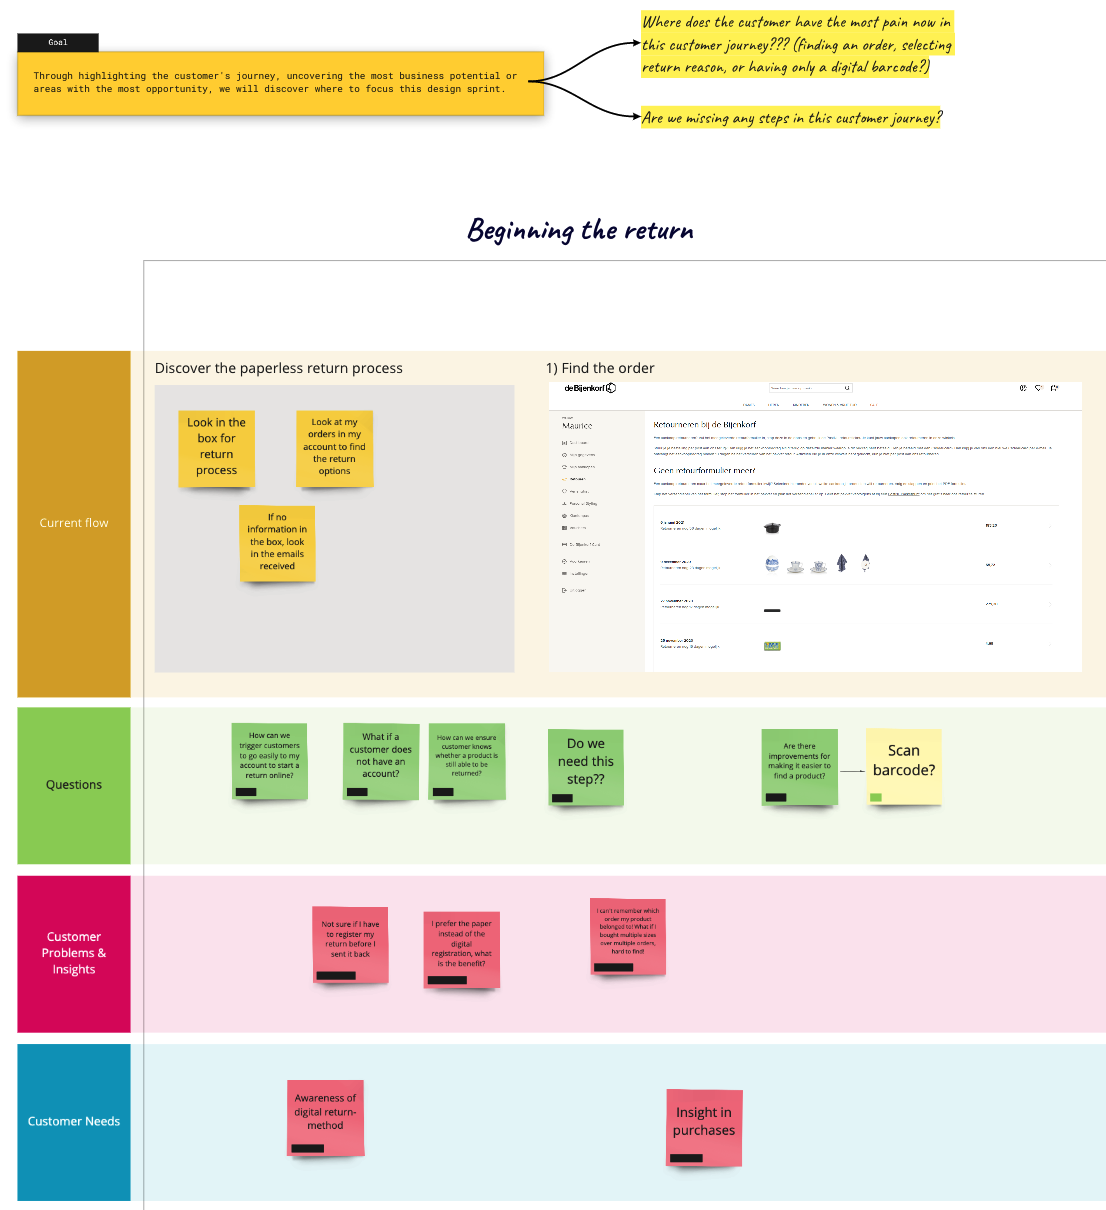 A portion of our customer journey map